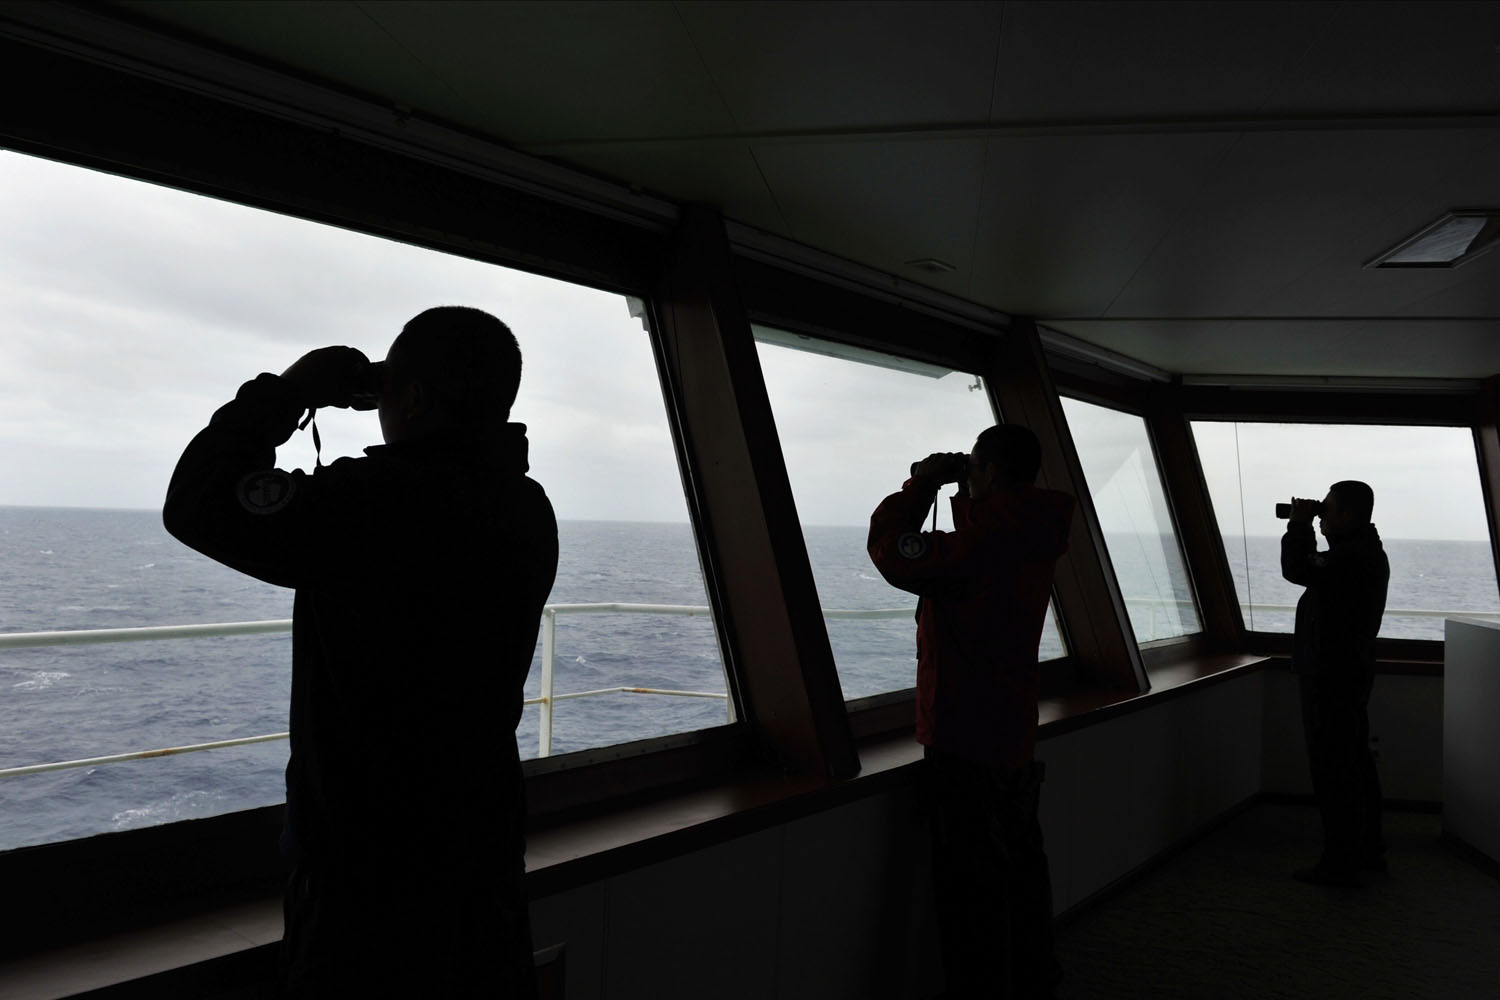 Mar. 23, 2014. Chinese Antarctic exploration team members aboard Chinese icebreaker Xuelong (Snow Dragon), search for missing Malaysian Airlines flight MH370 over the southern Indian Ocean.